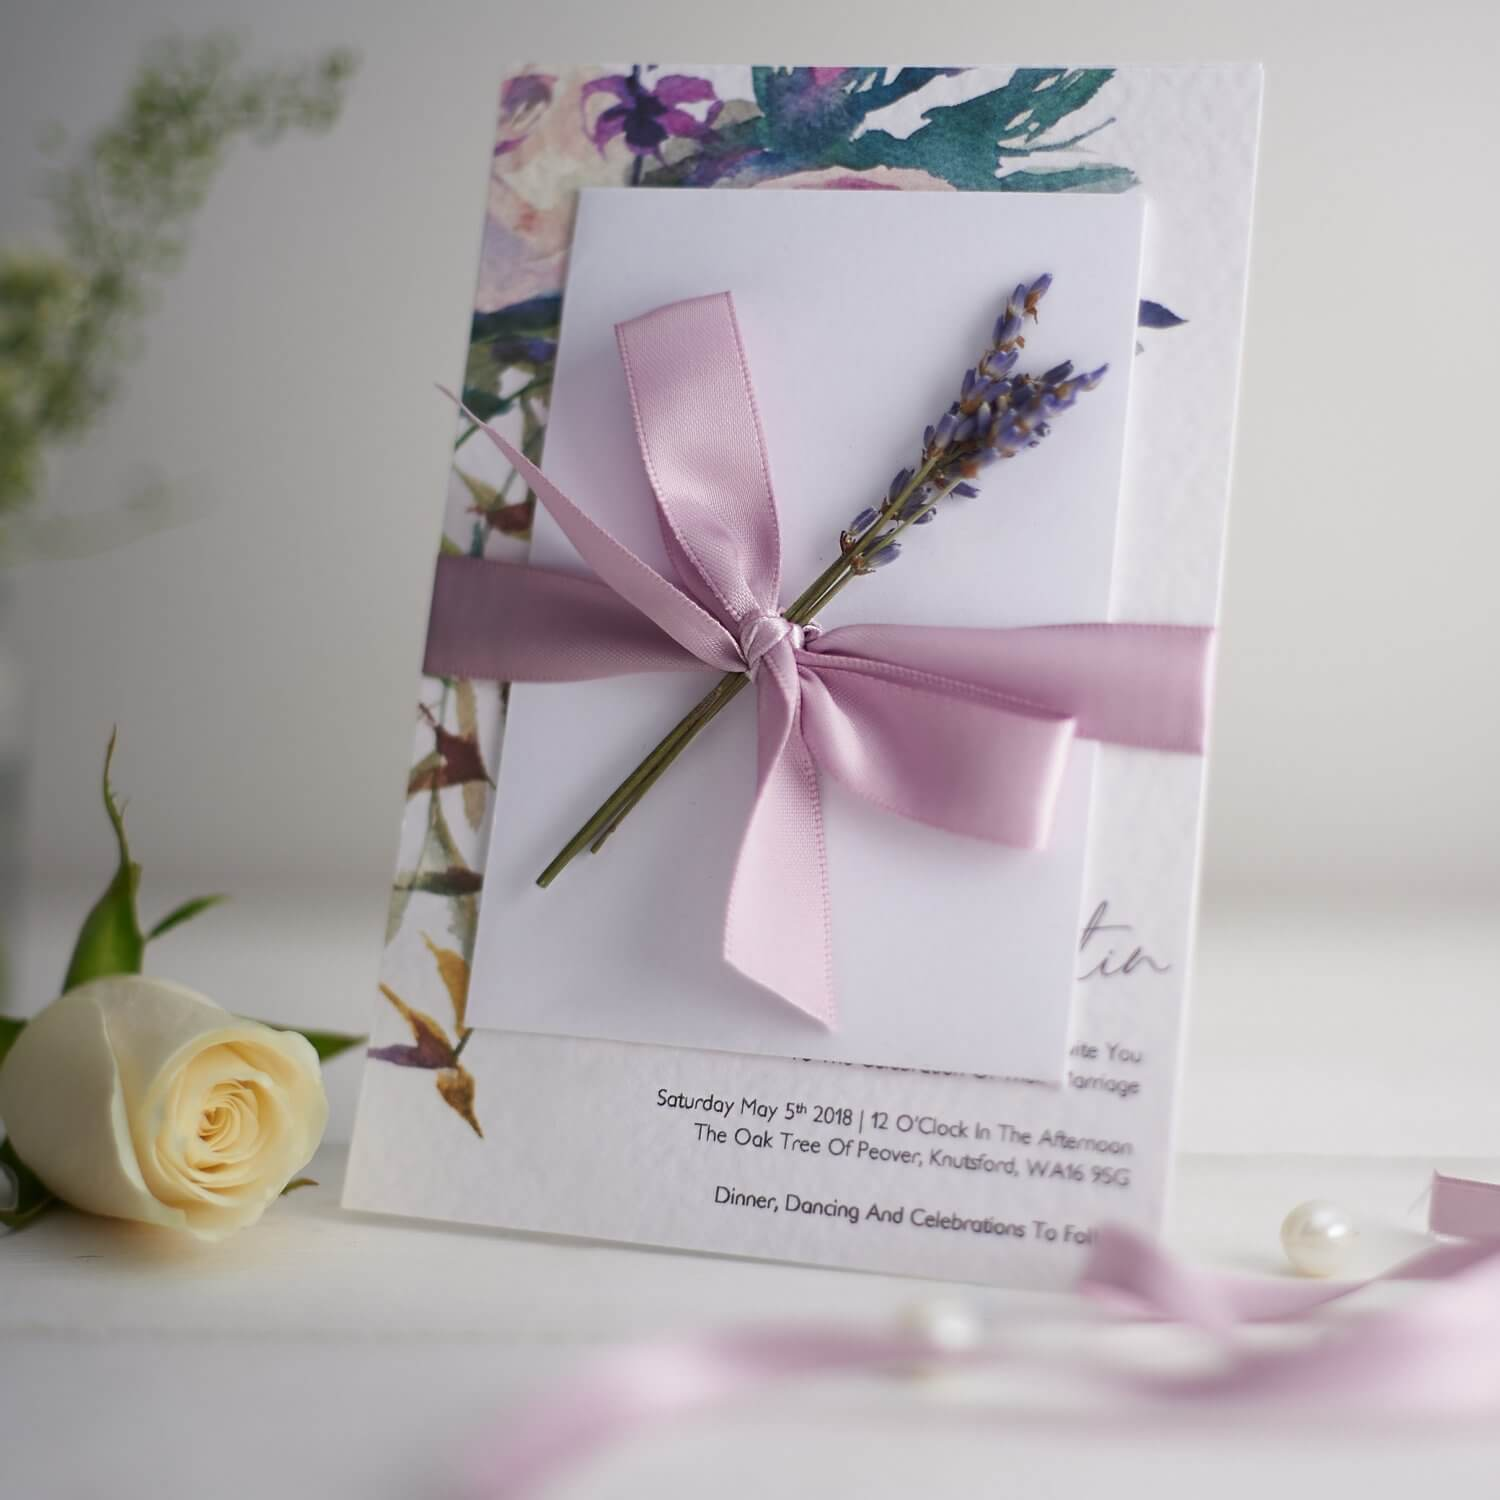 Limited depth of field used to create soft effect in this product photograph for a stationery designer